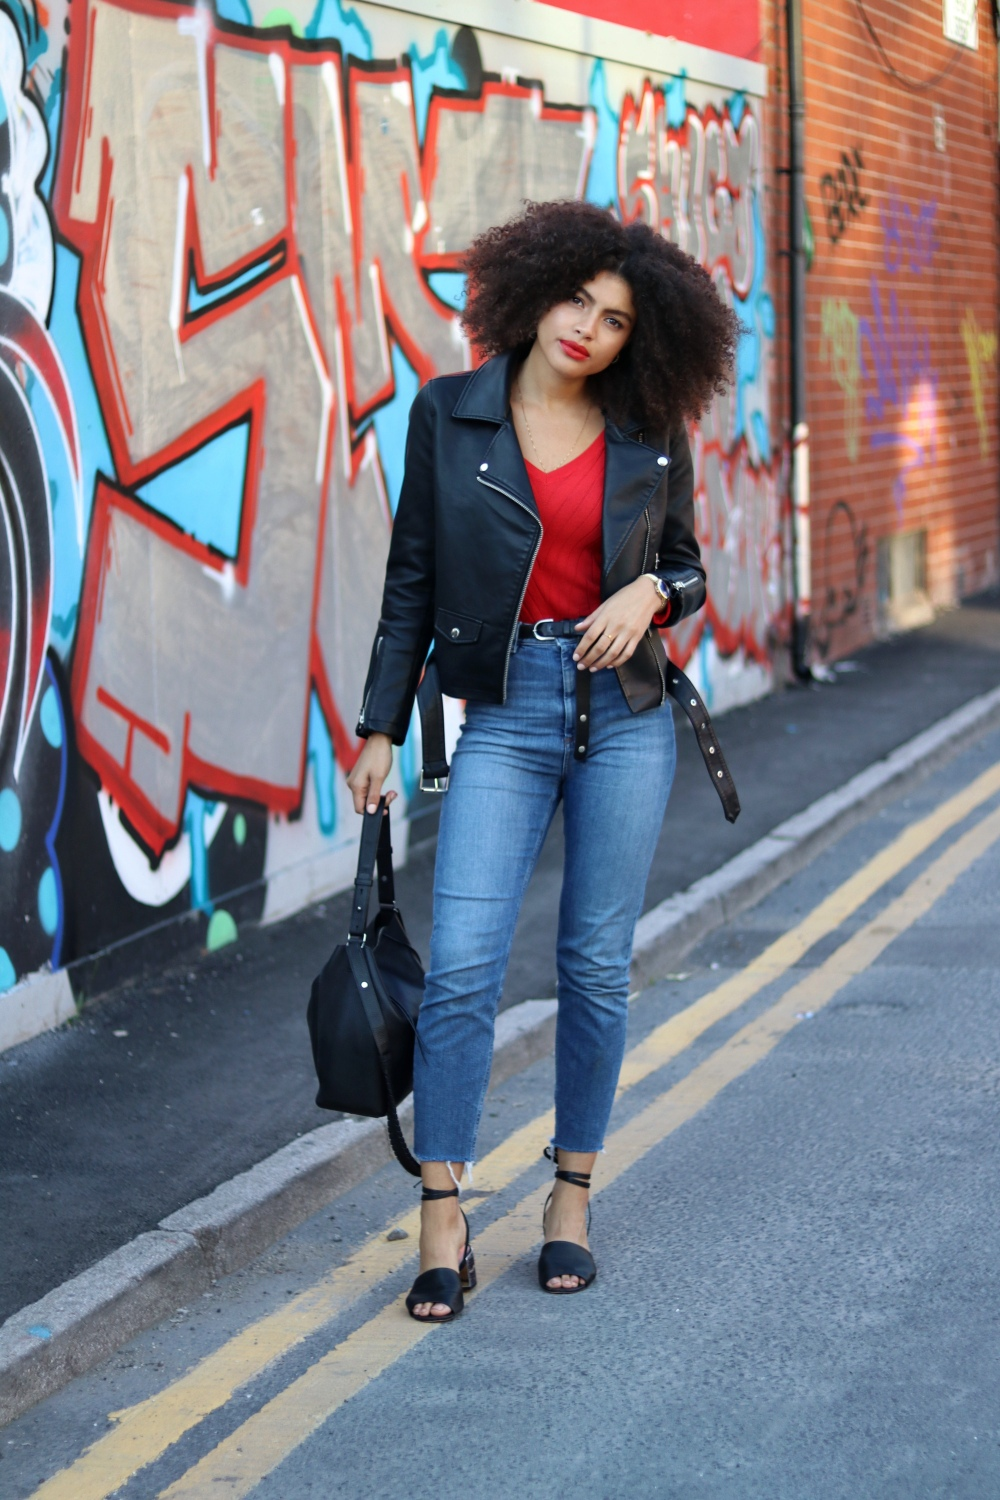 Denim and Faux Leather Casual Womens Biker Jacket Outfit